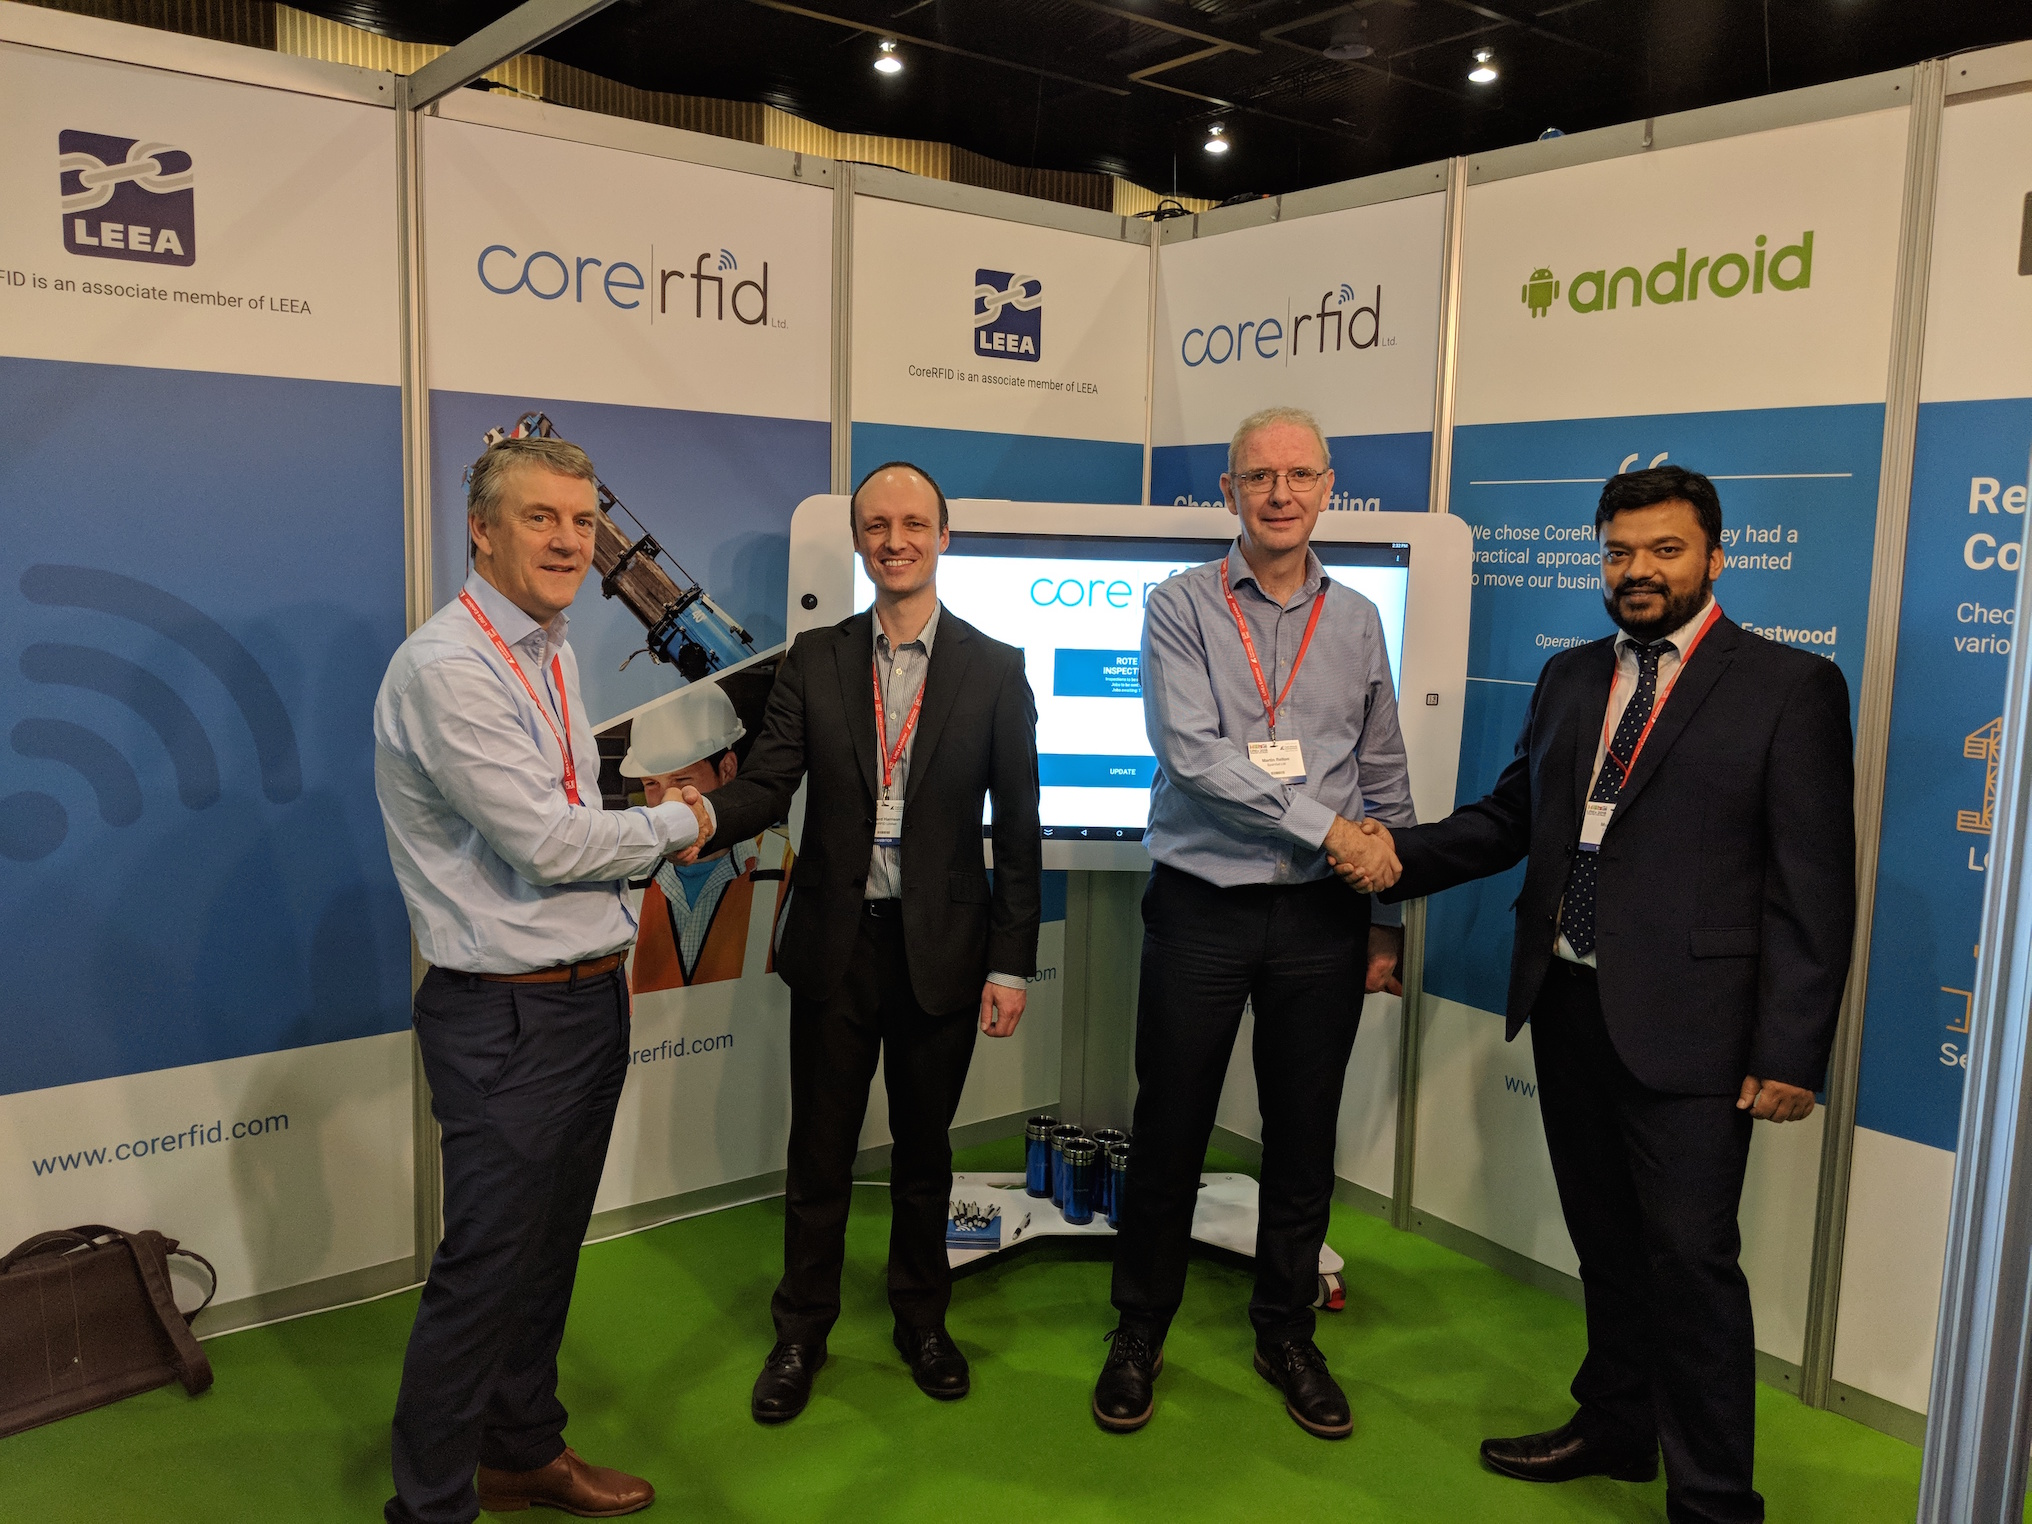 , SpanSet acquires stake in CoreRFID, Skem News - The Top Source for Skelmersdale News